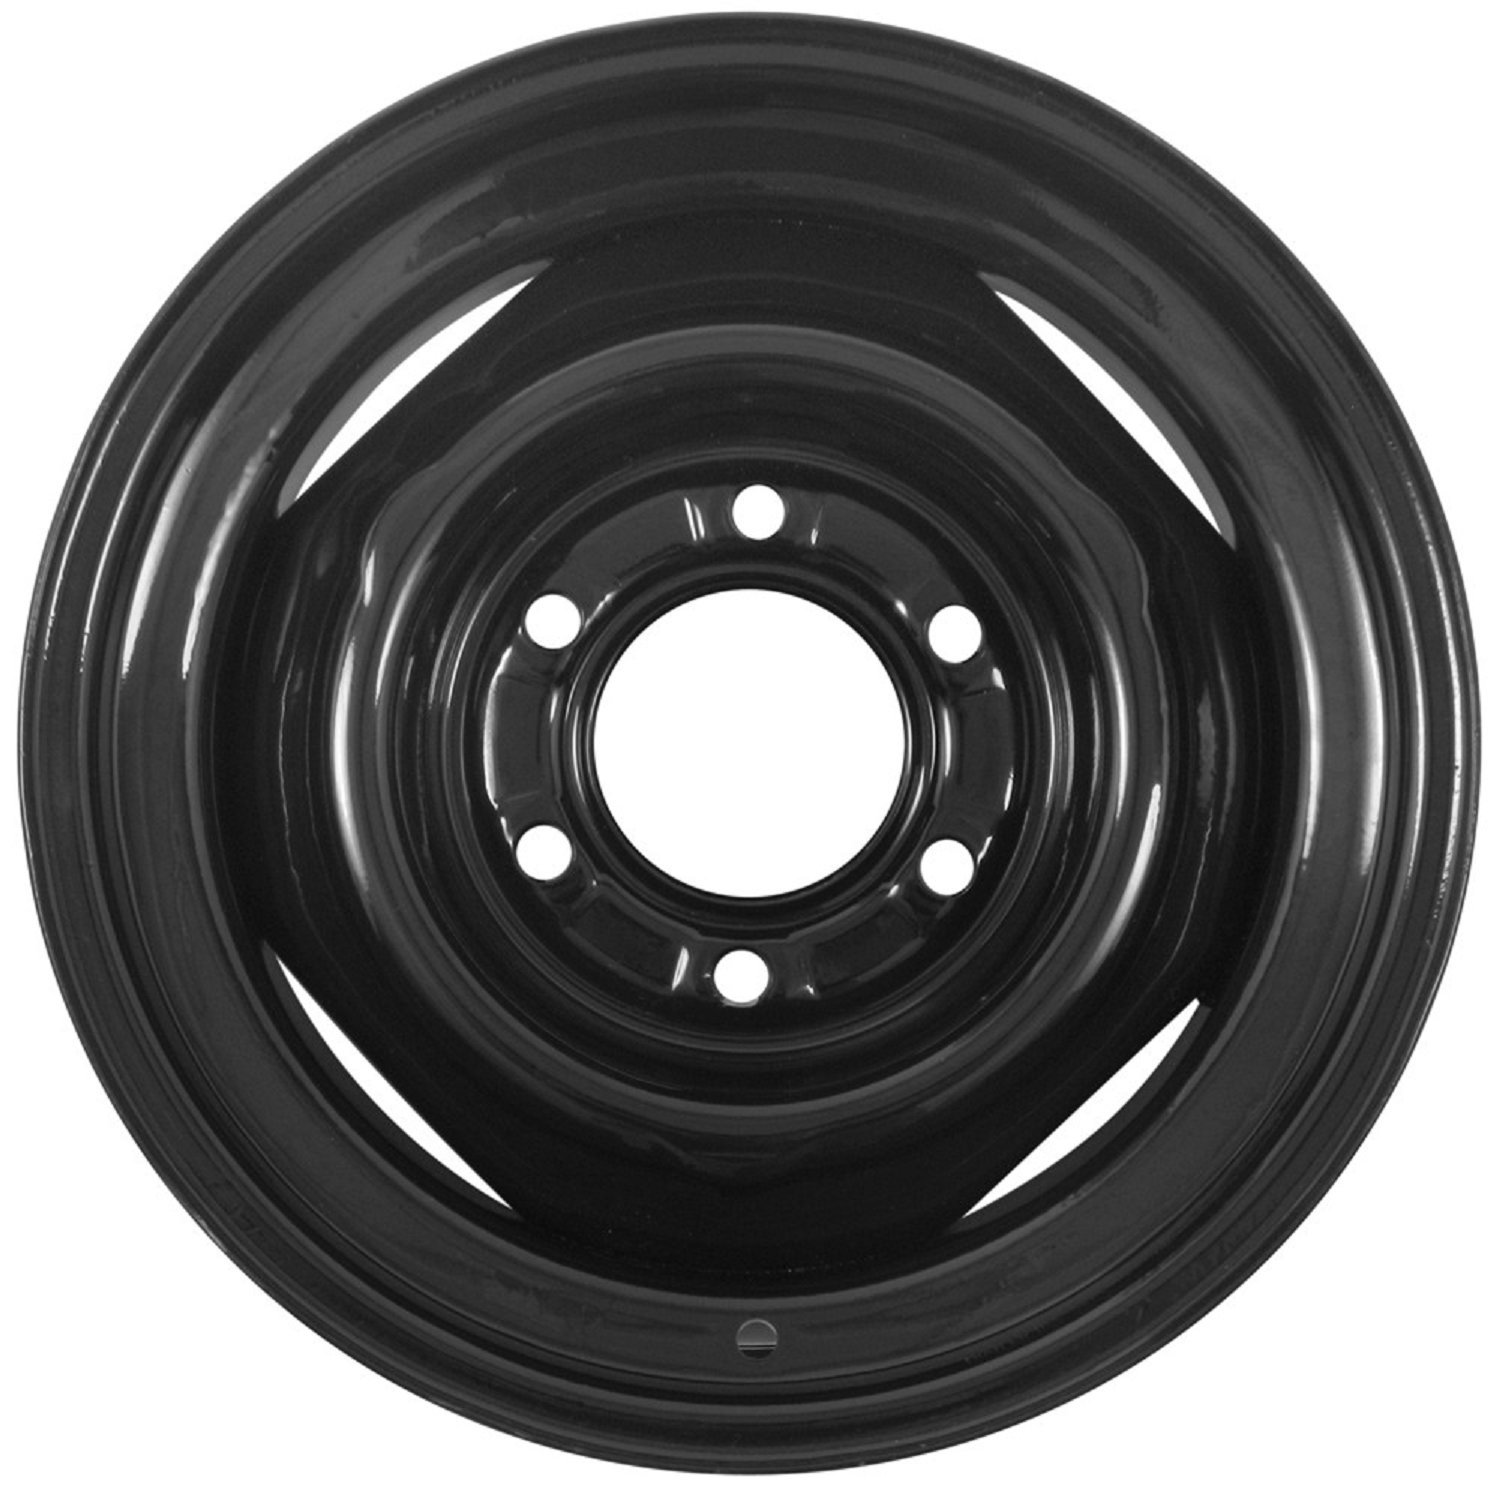 eCustomRim Conventional Steel Trailer Wheel Rim Black 15x6 6 Hole 5.5'' Circle 15'' x 6''